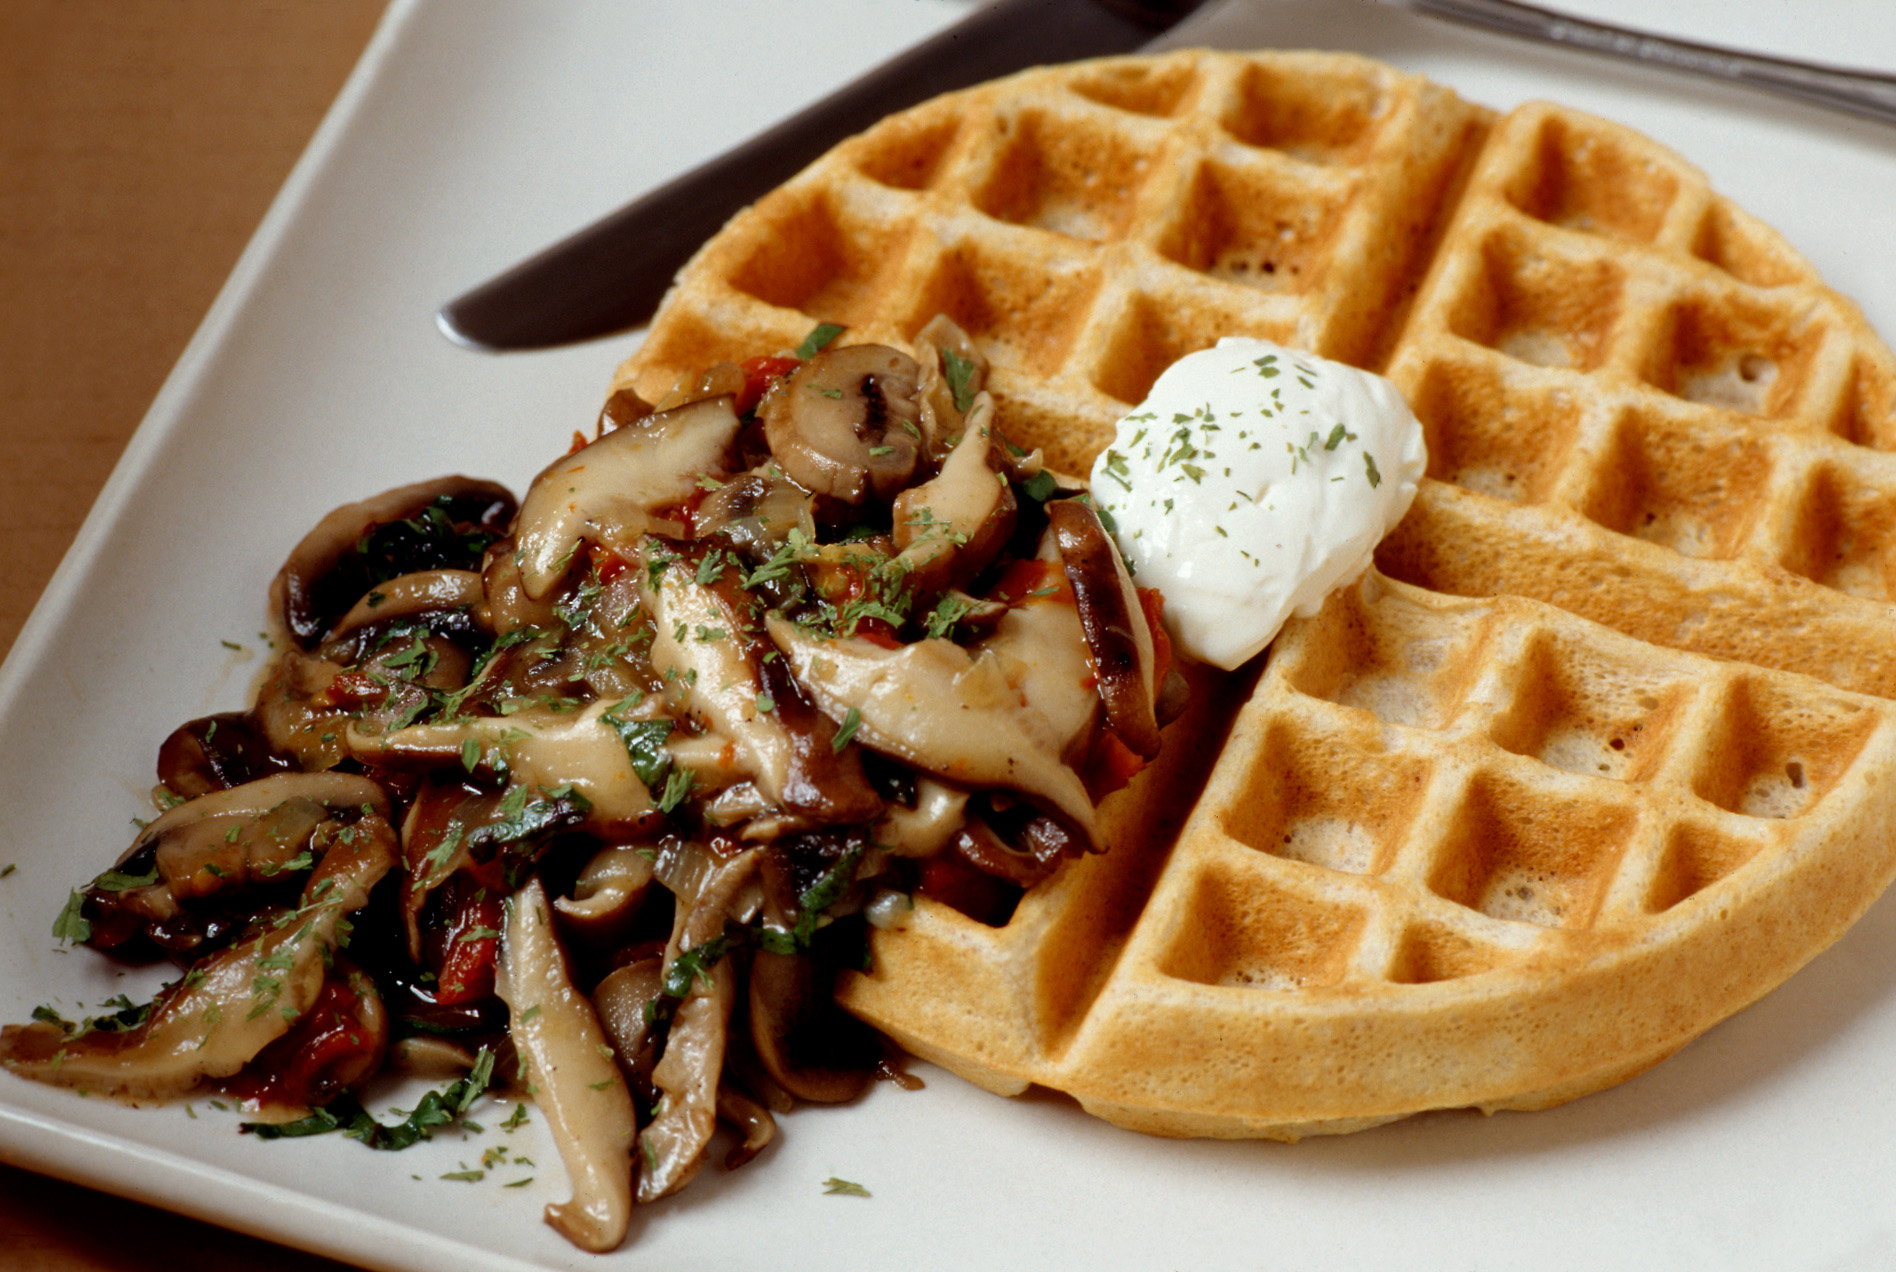 Savory Waffles with Cremini Mushrooms and Poached Eggs. Egg yolks blend with the mushrooms' juices to form an incredible, umami-packed sauce.